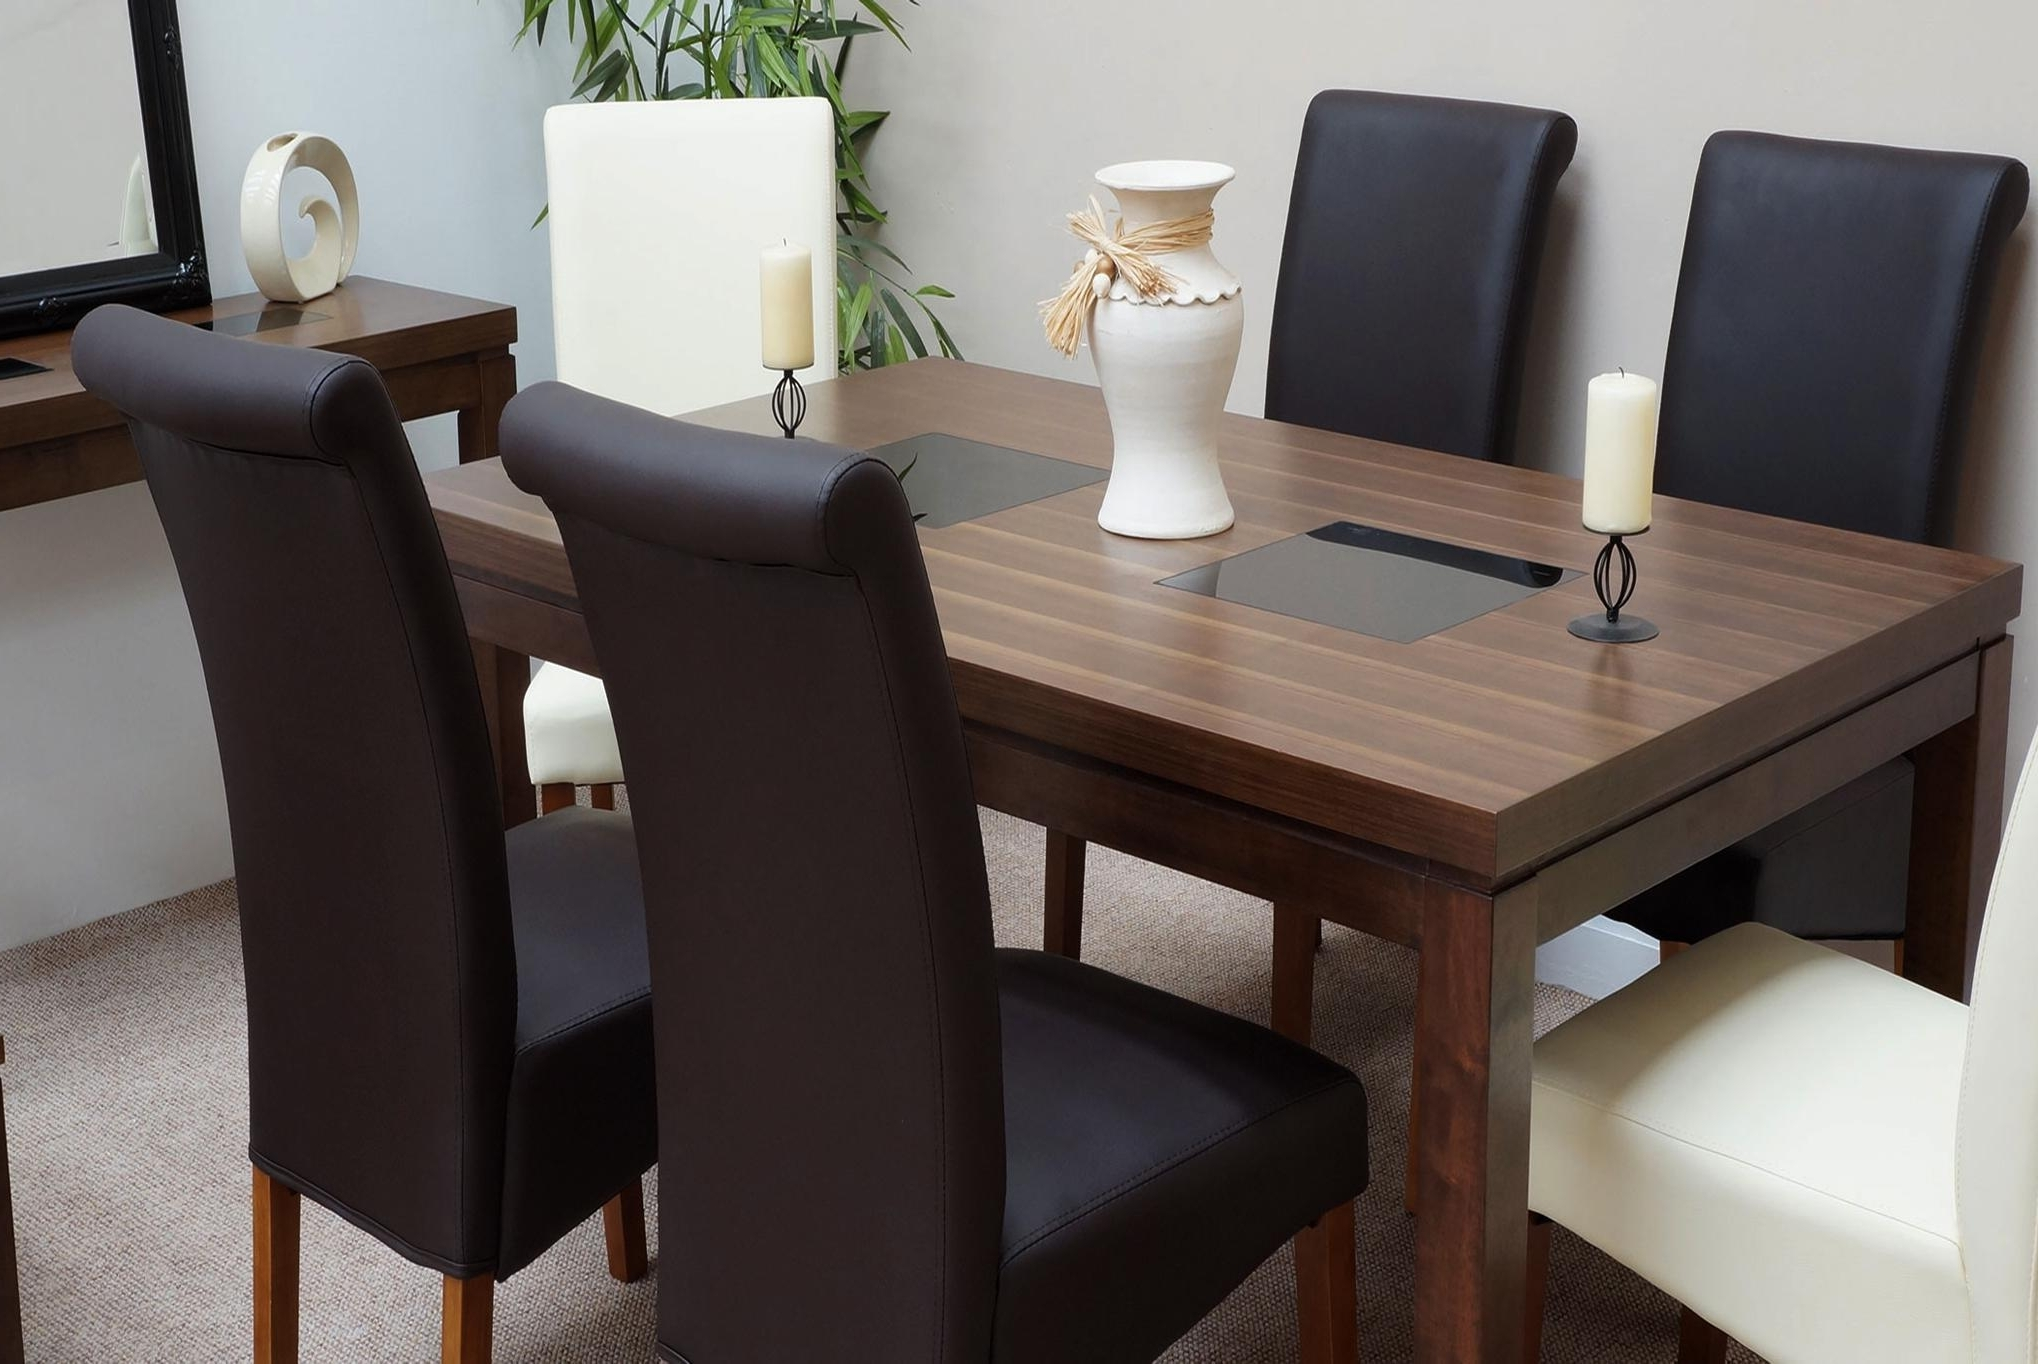 2018 Sydney Walnut 5Ft+ 6 Chairs - Dublin, Ireland Furniture Store throughout Walnut Dining Table And 6 Chairs